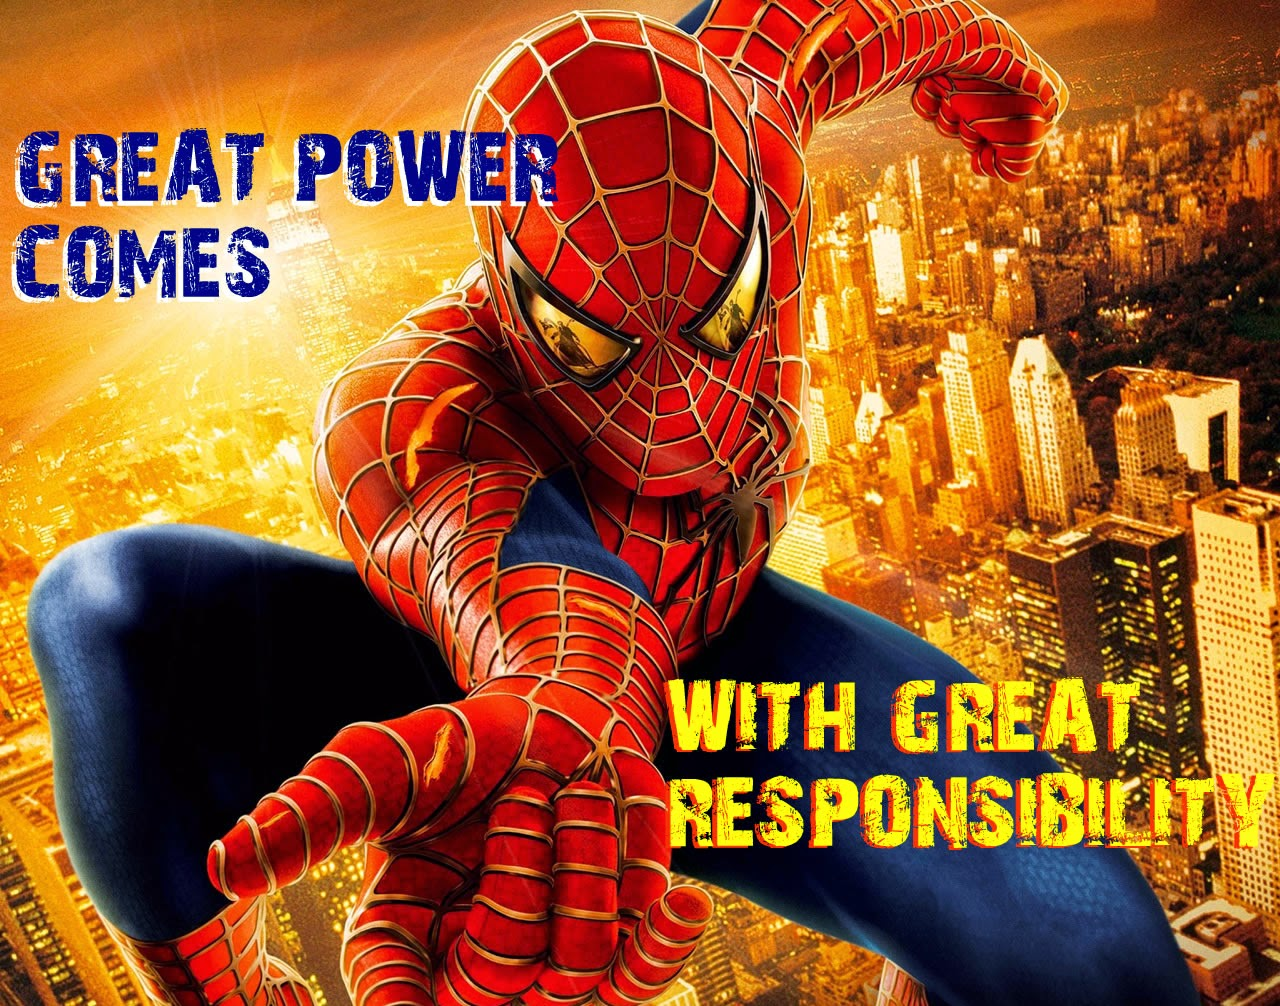 SpiderMan famous quote : Great power comes with great responsibility.